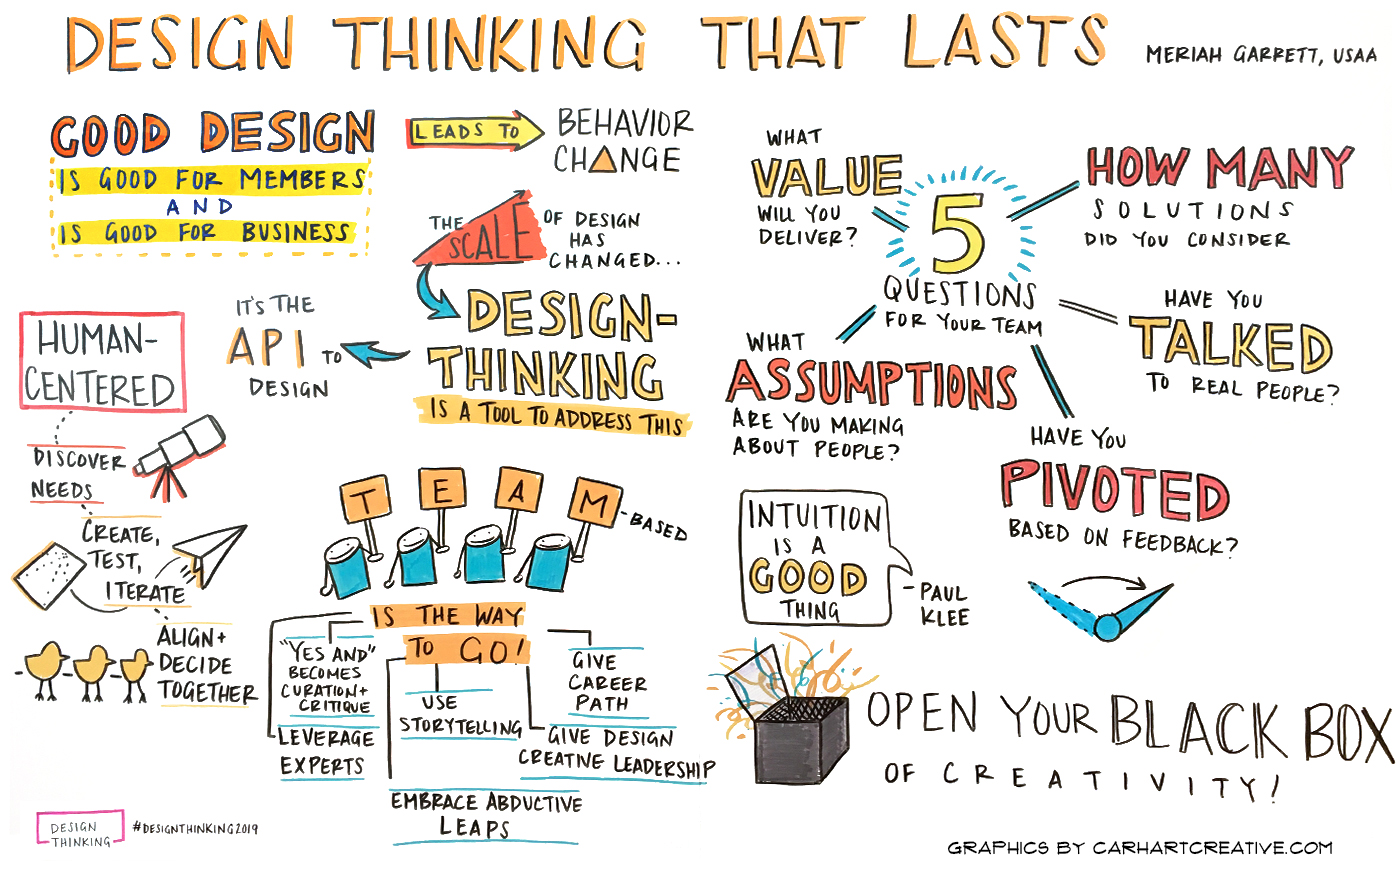 graphic recording Design Thinking Conference